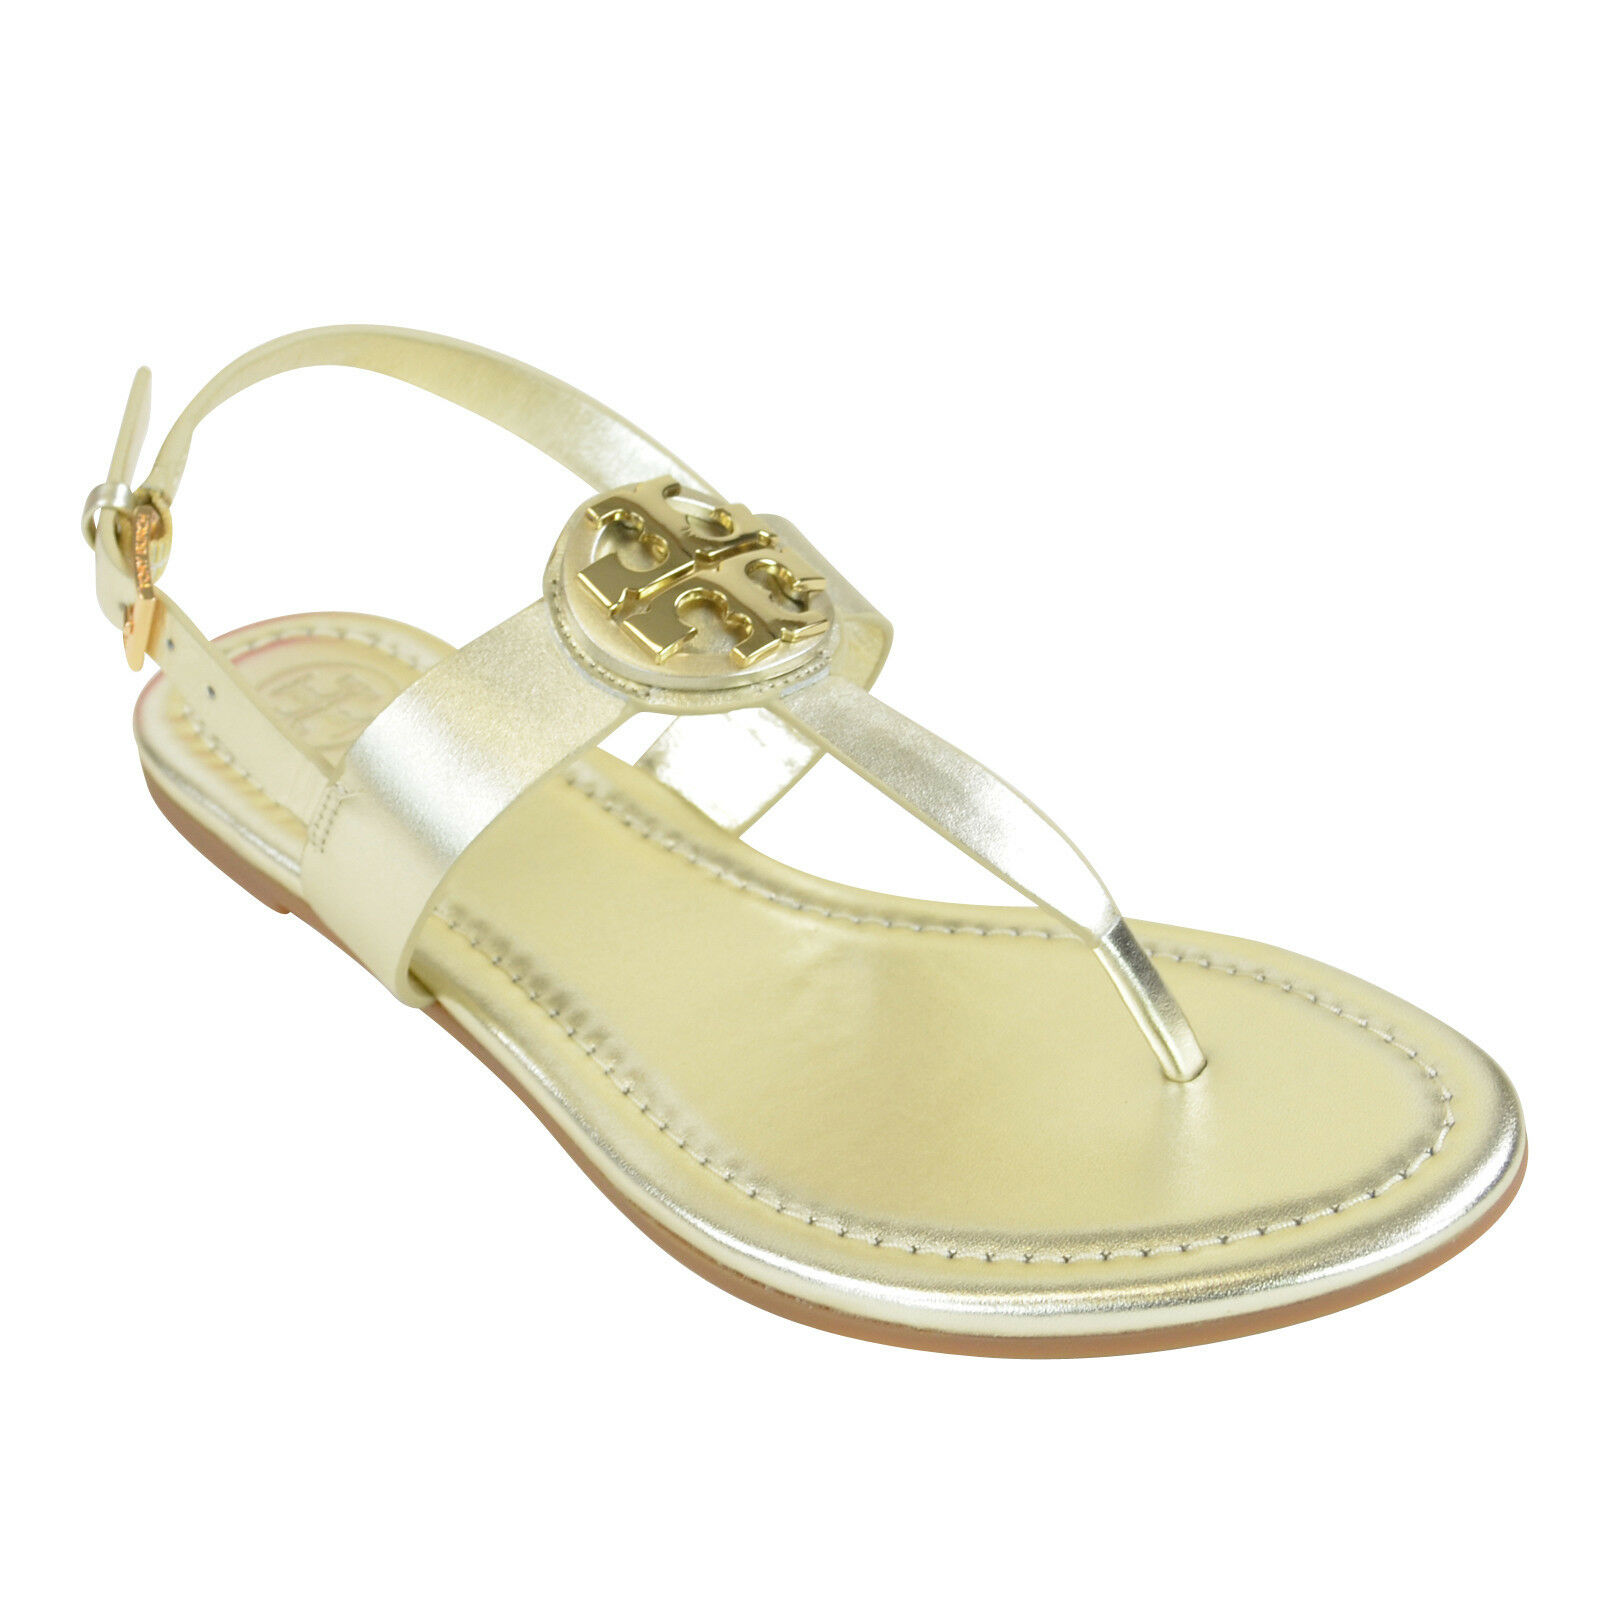 Tory Burch Bryce Flate Thong Sandal/ Vegan Leather in Spark Gold 7.5